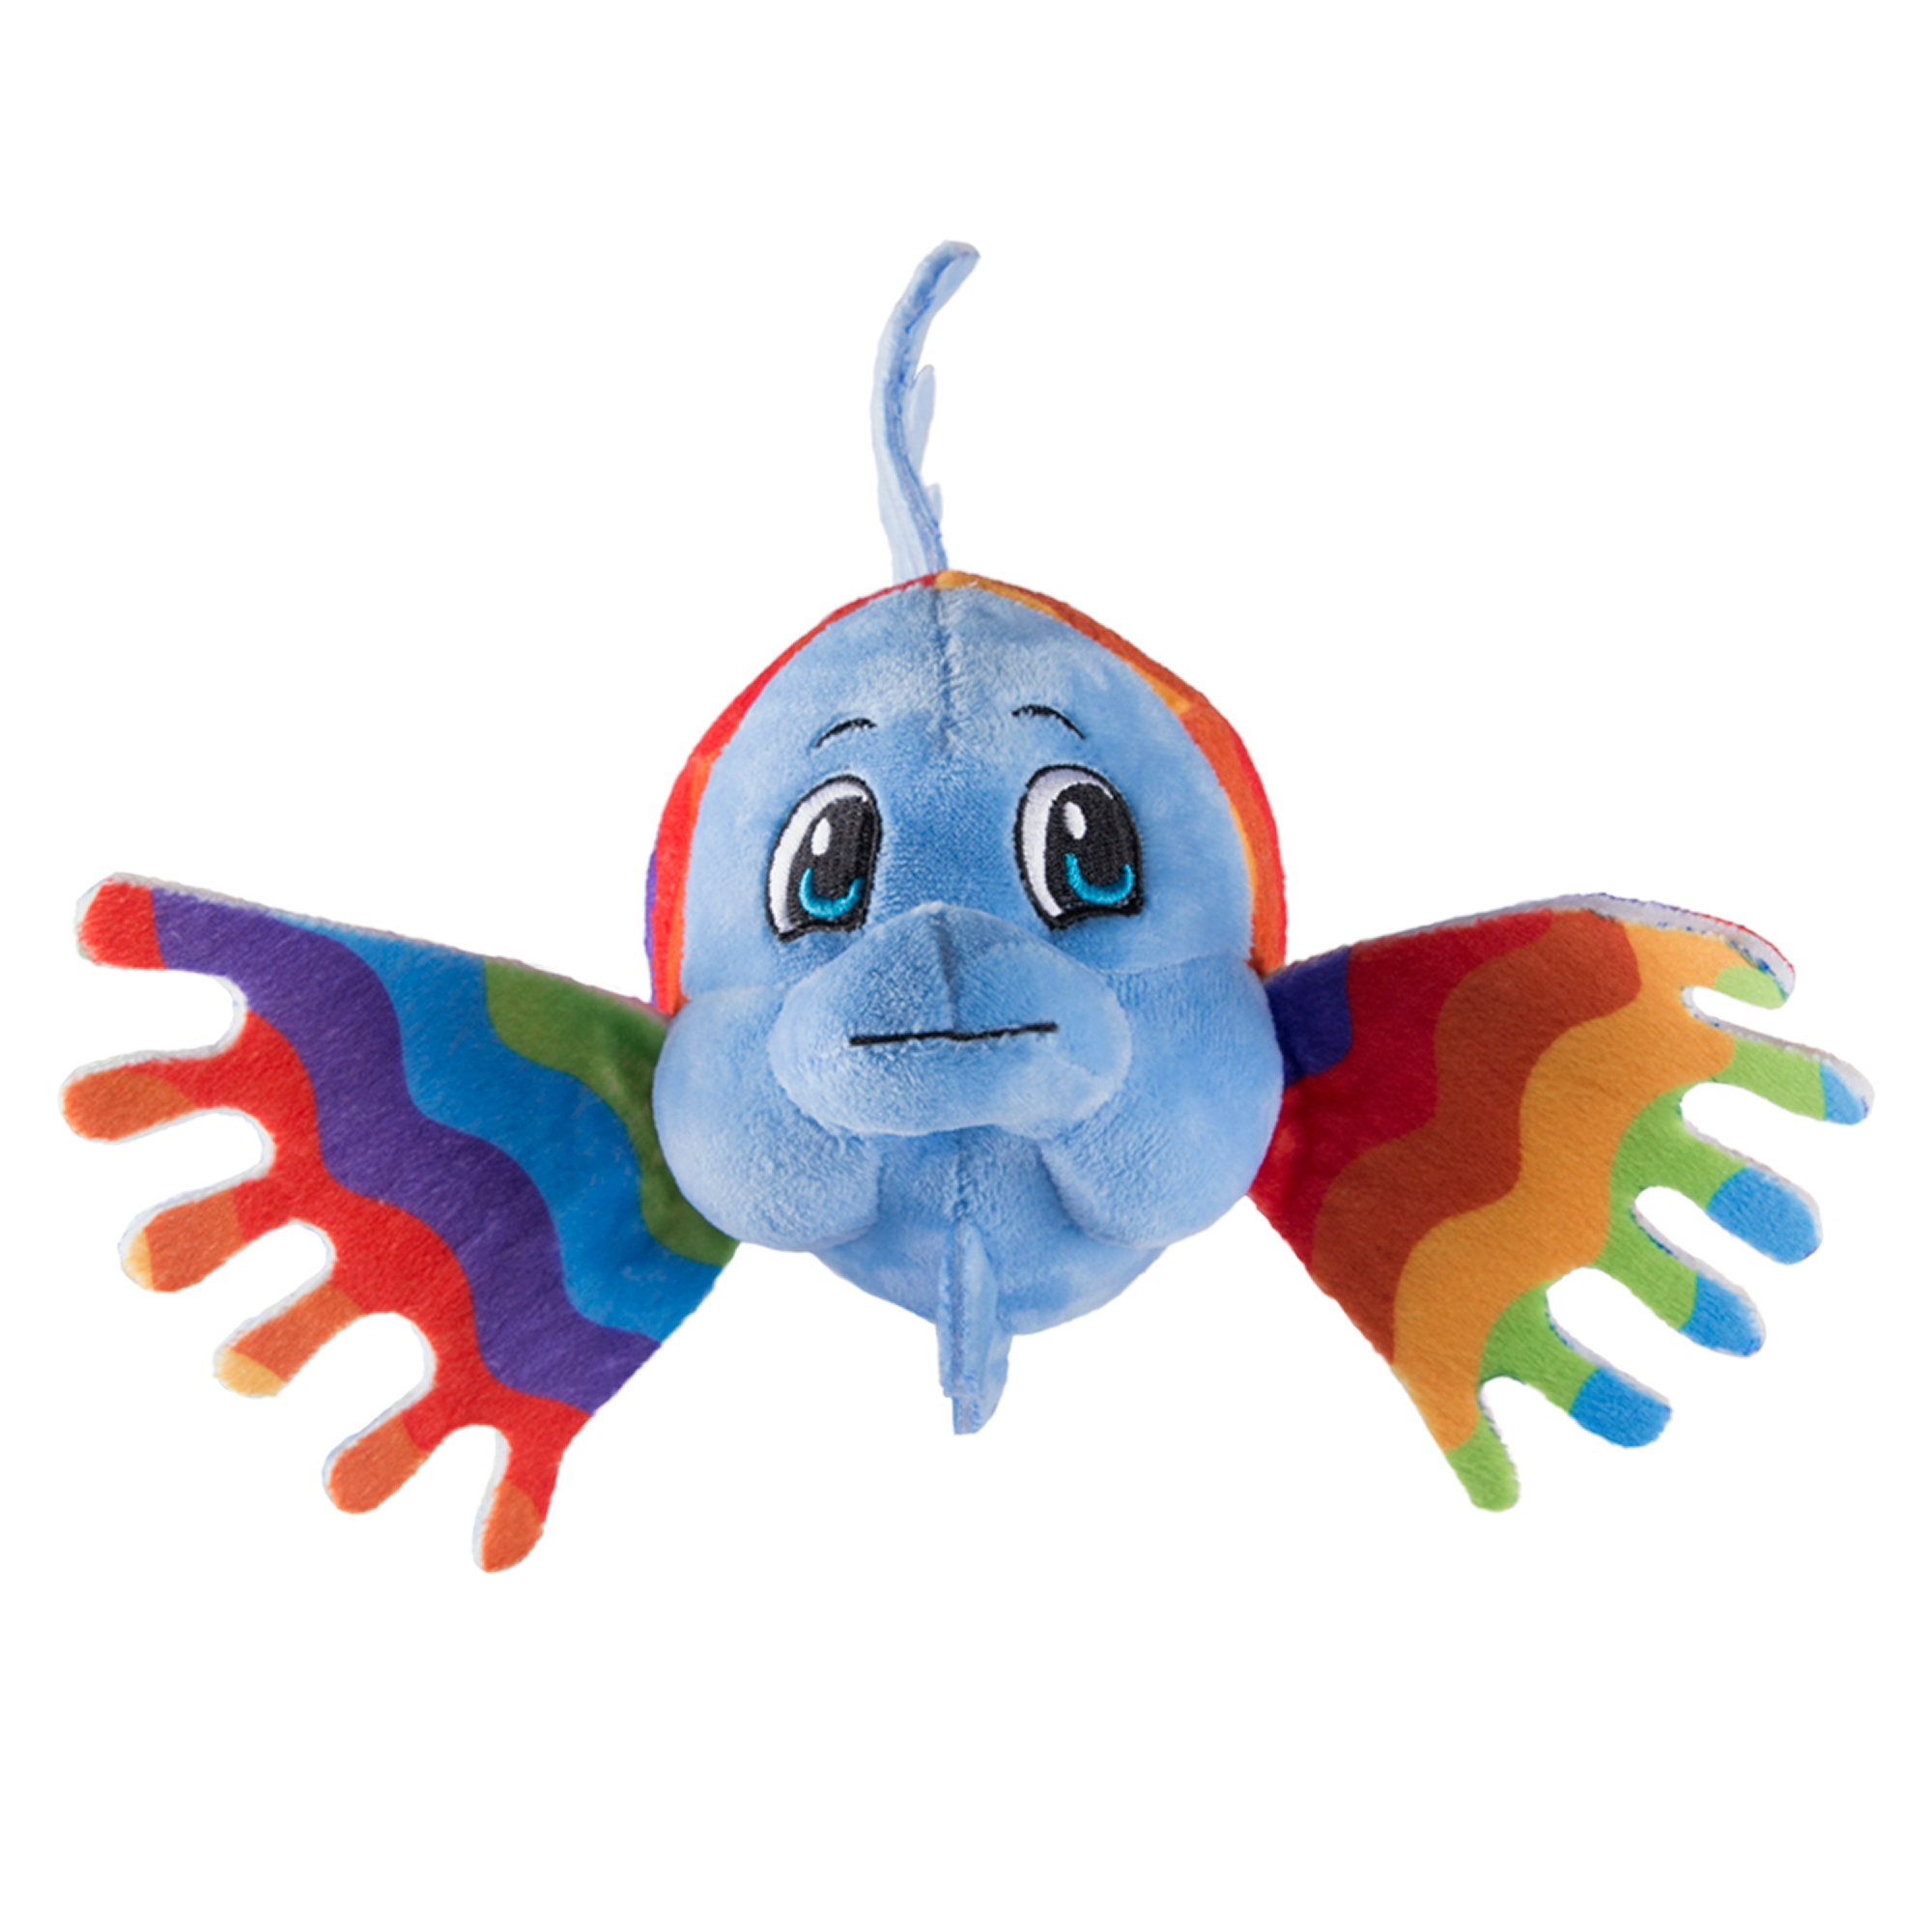 Fin Fun Picasso the Rainbow Fish Plush Toy- Mermaid Fin Friend Stuffed Animal